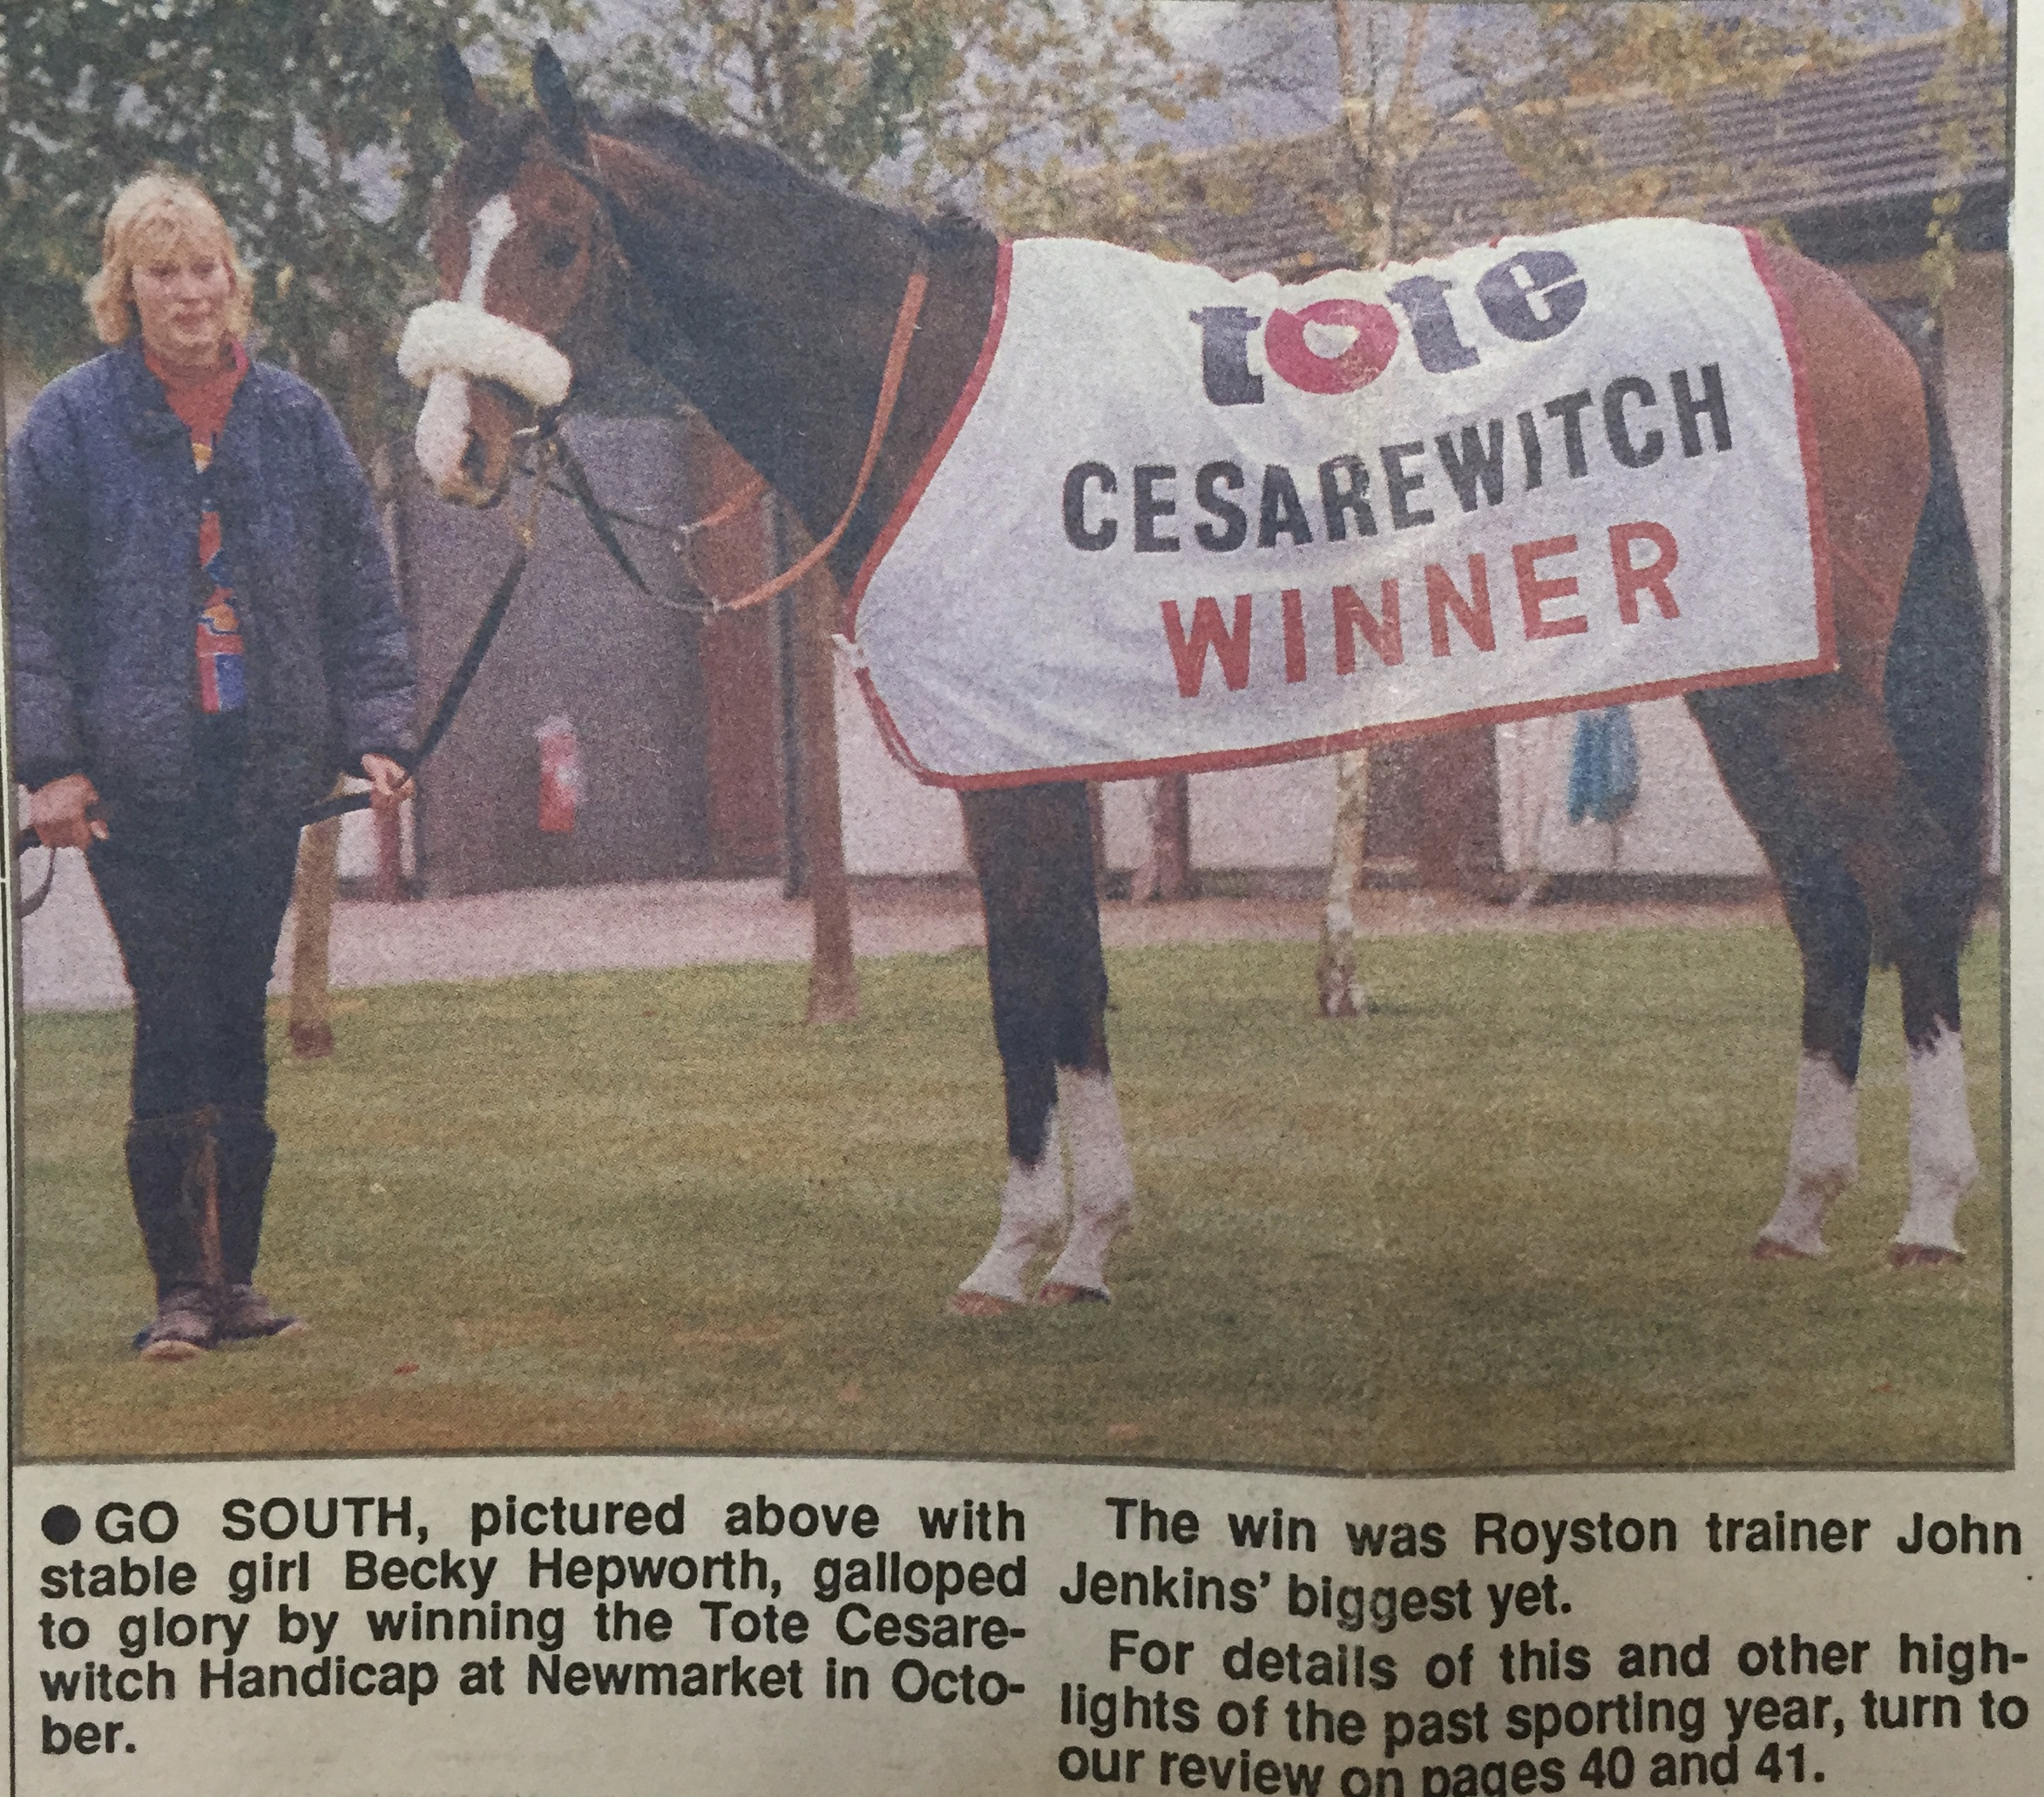 go south cesarewitch winner john jenkins racehorse trainer royston news